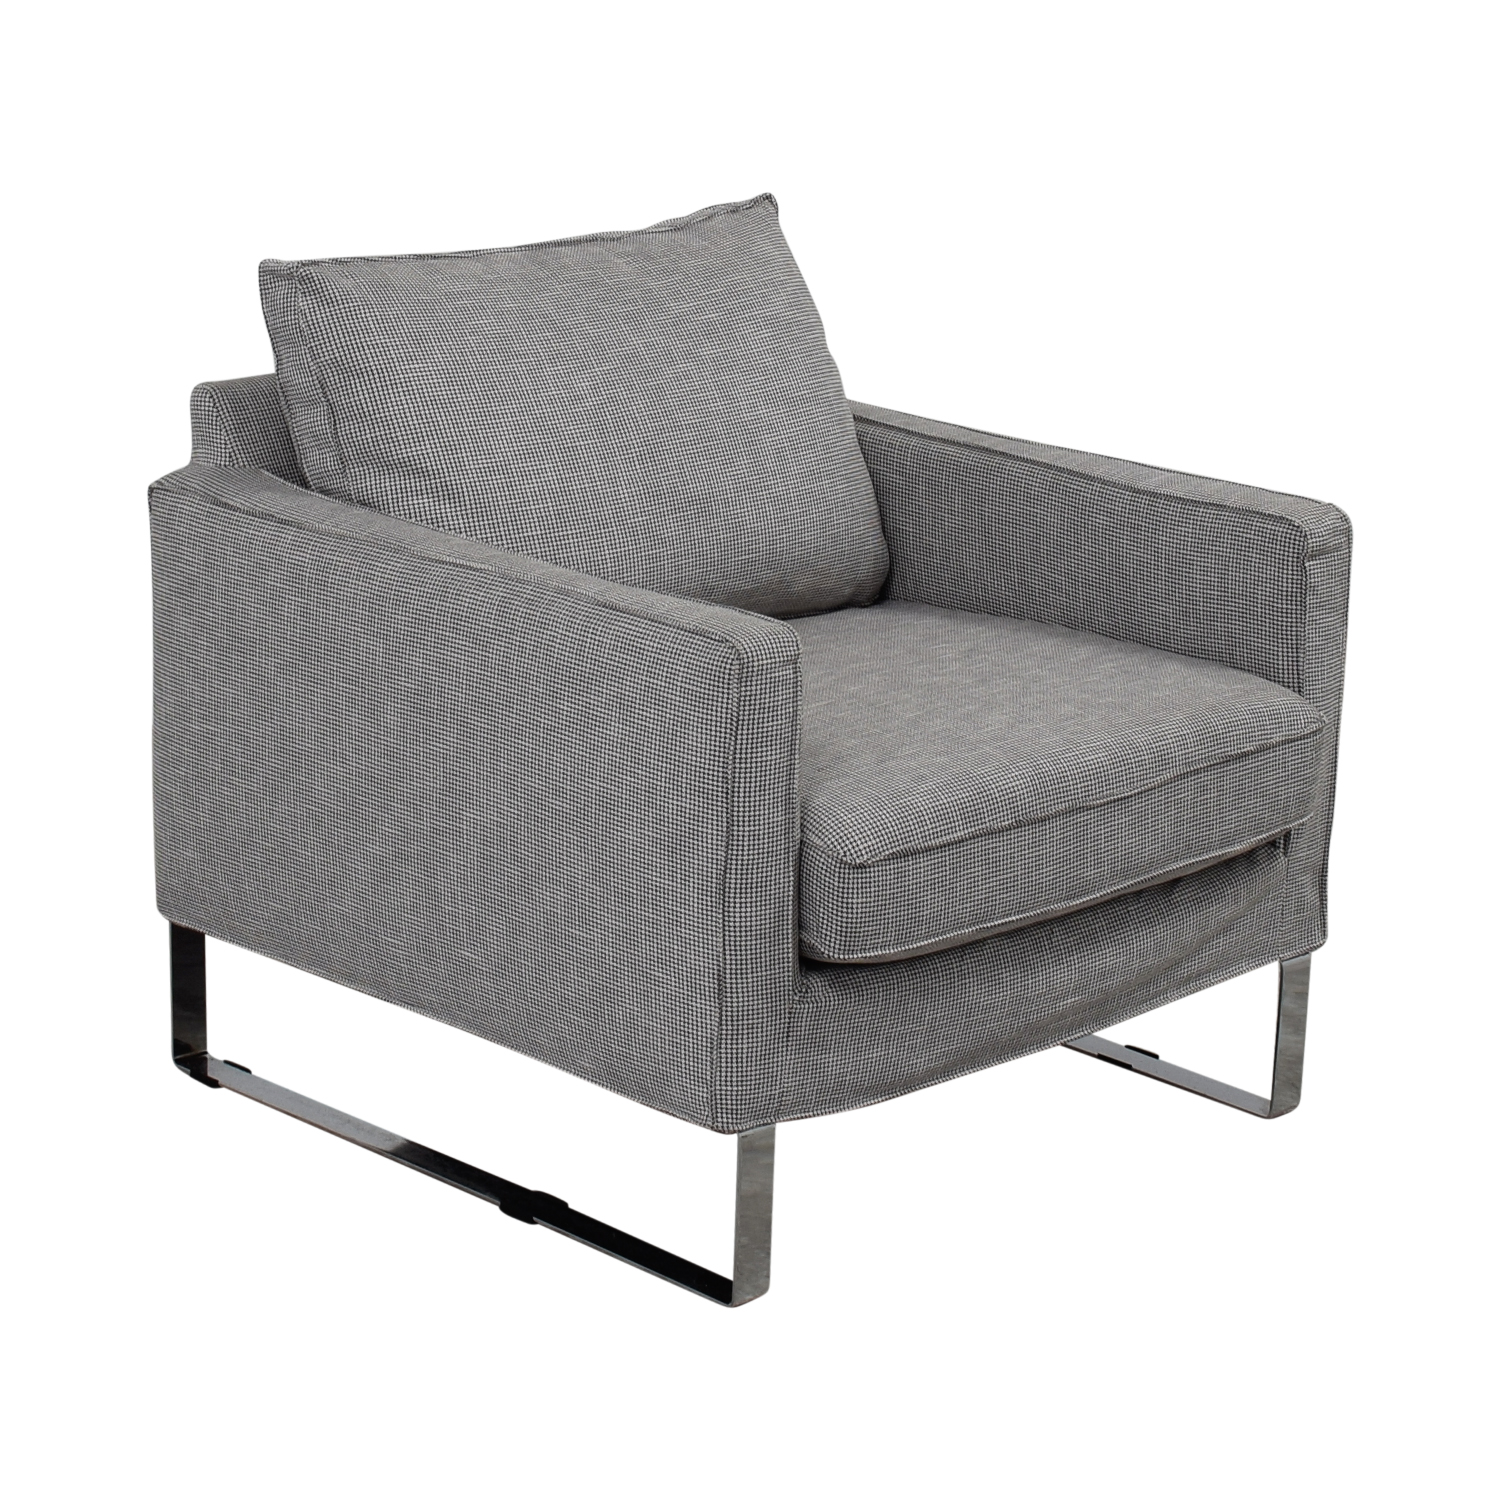 Remarkable 89 Off Ikea Ikea Mellby Chair Chairs Beutiful Home Inspiration Cosmmahrainfo